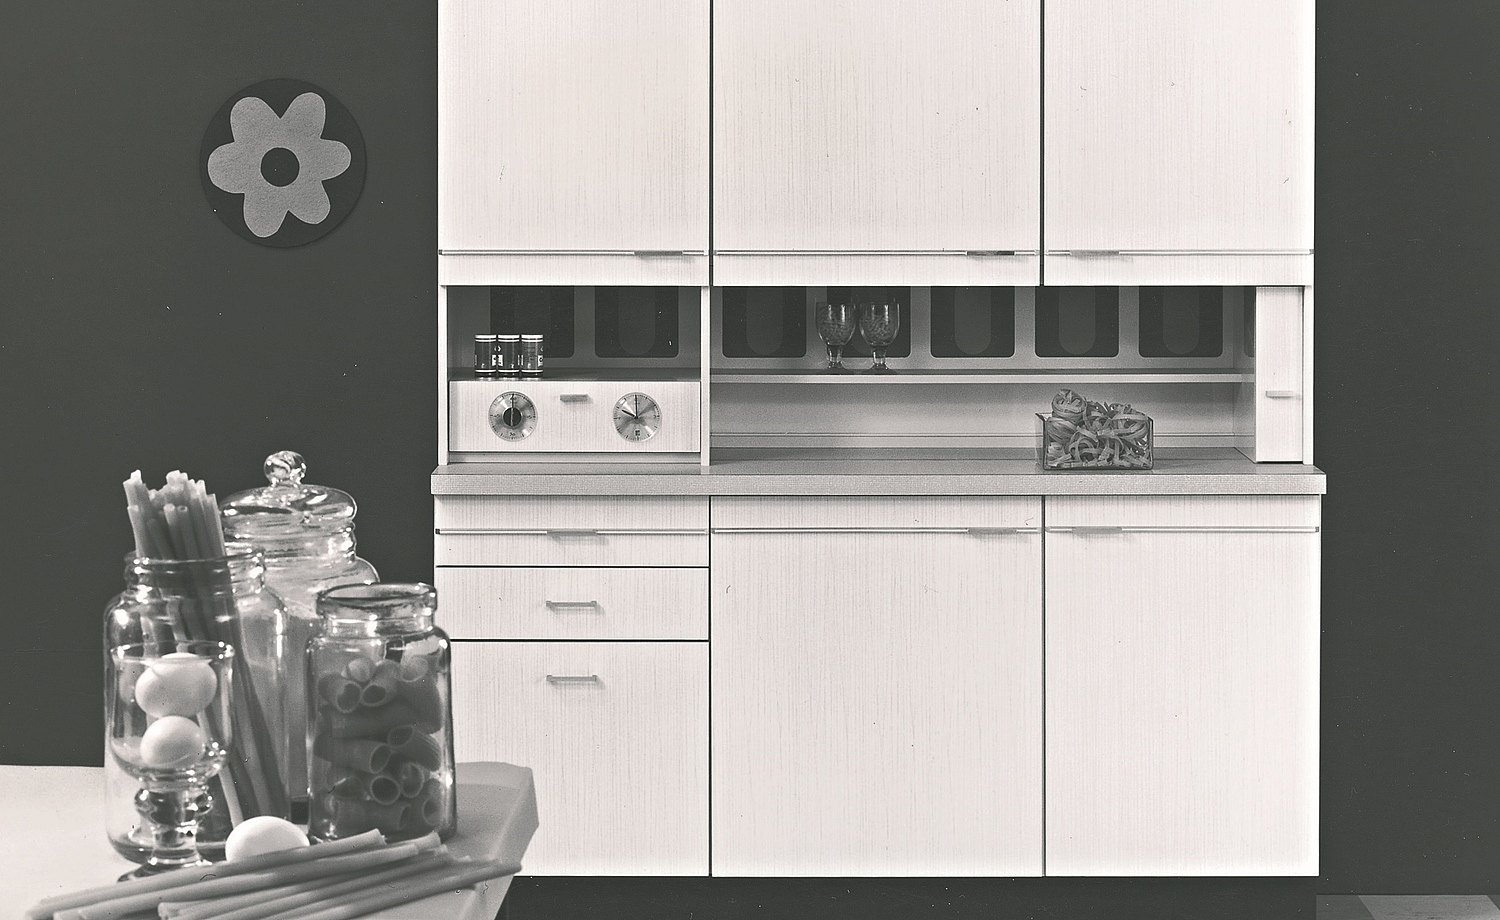 1969: bulthaup presents Stil 75: a minimalist kitchen unit with wall and base cabinets